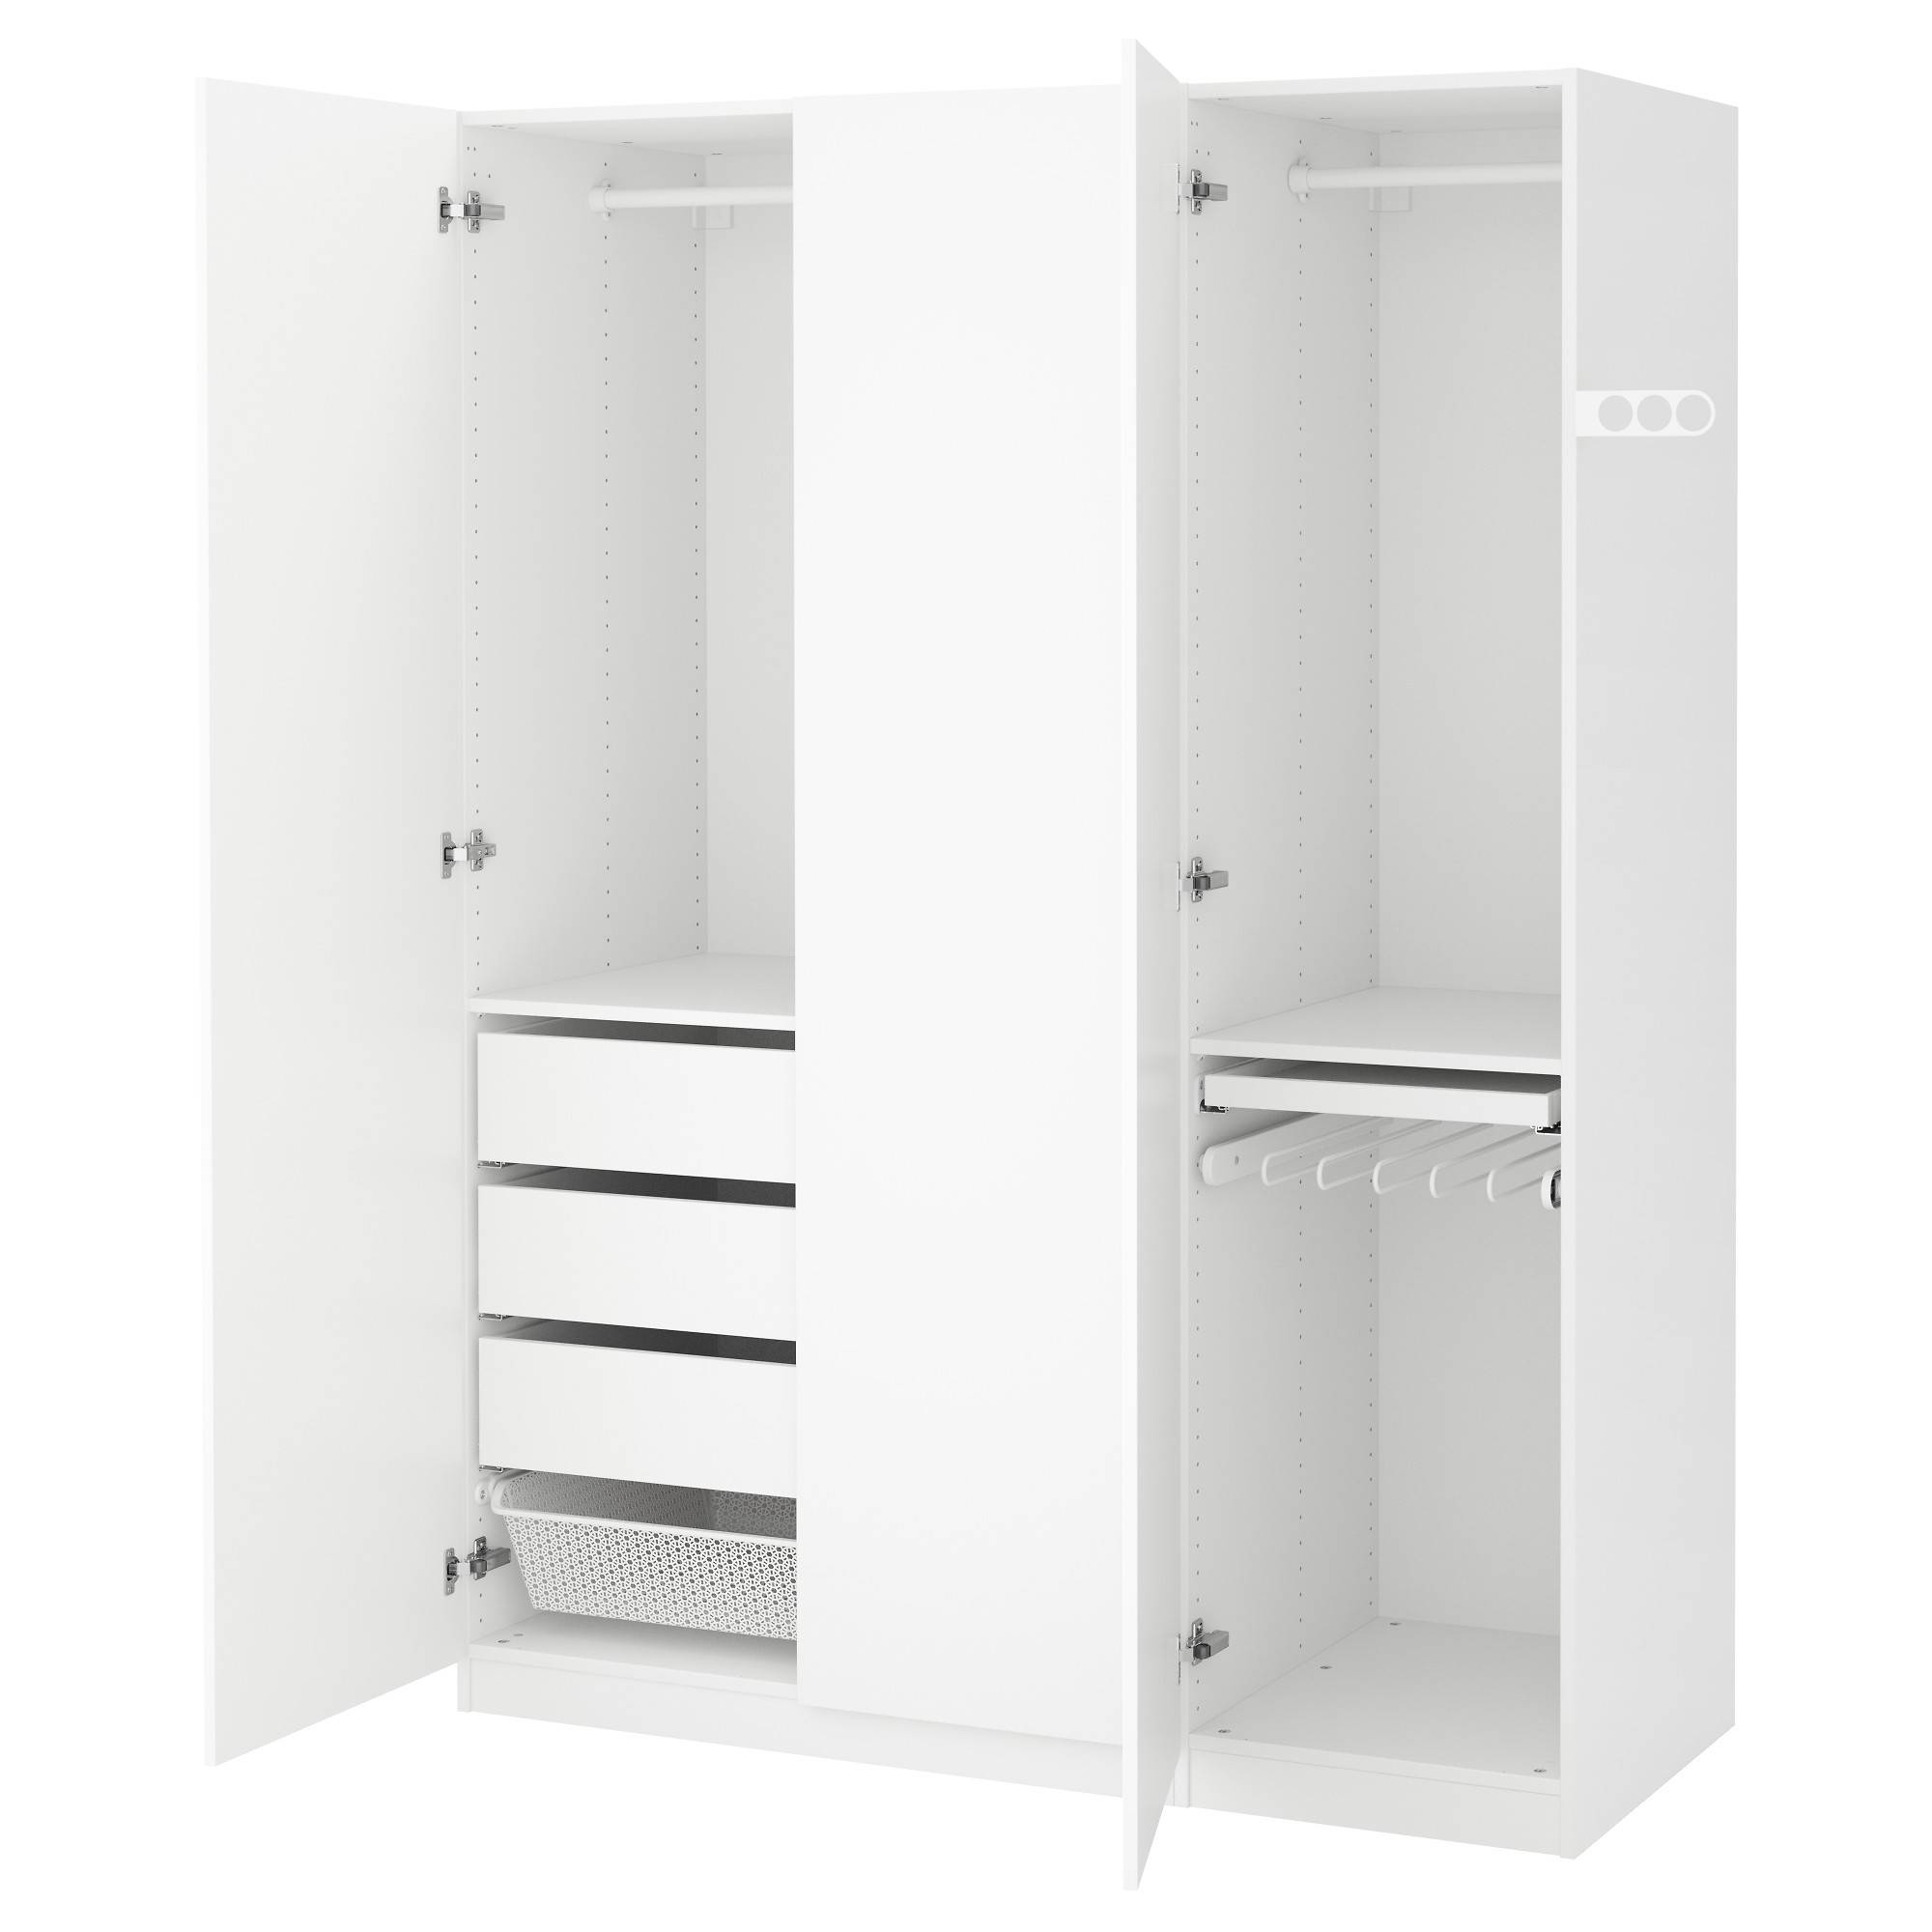 Wardrobes | Ikea inside 4 Door White Wardrobes (Image 14 of 15)